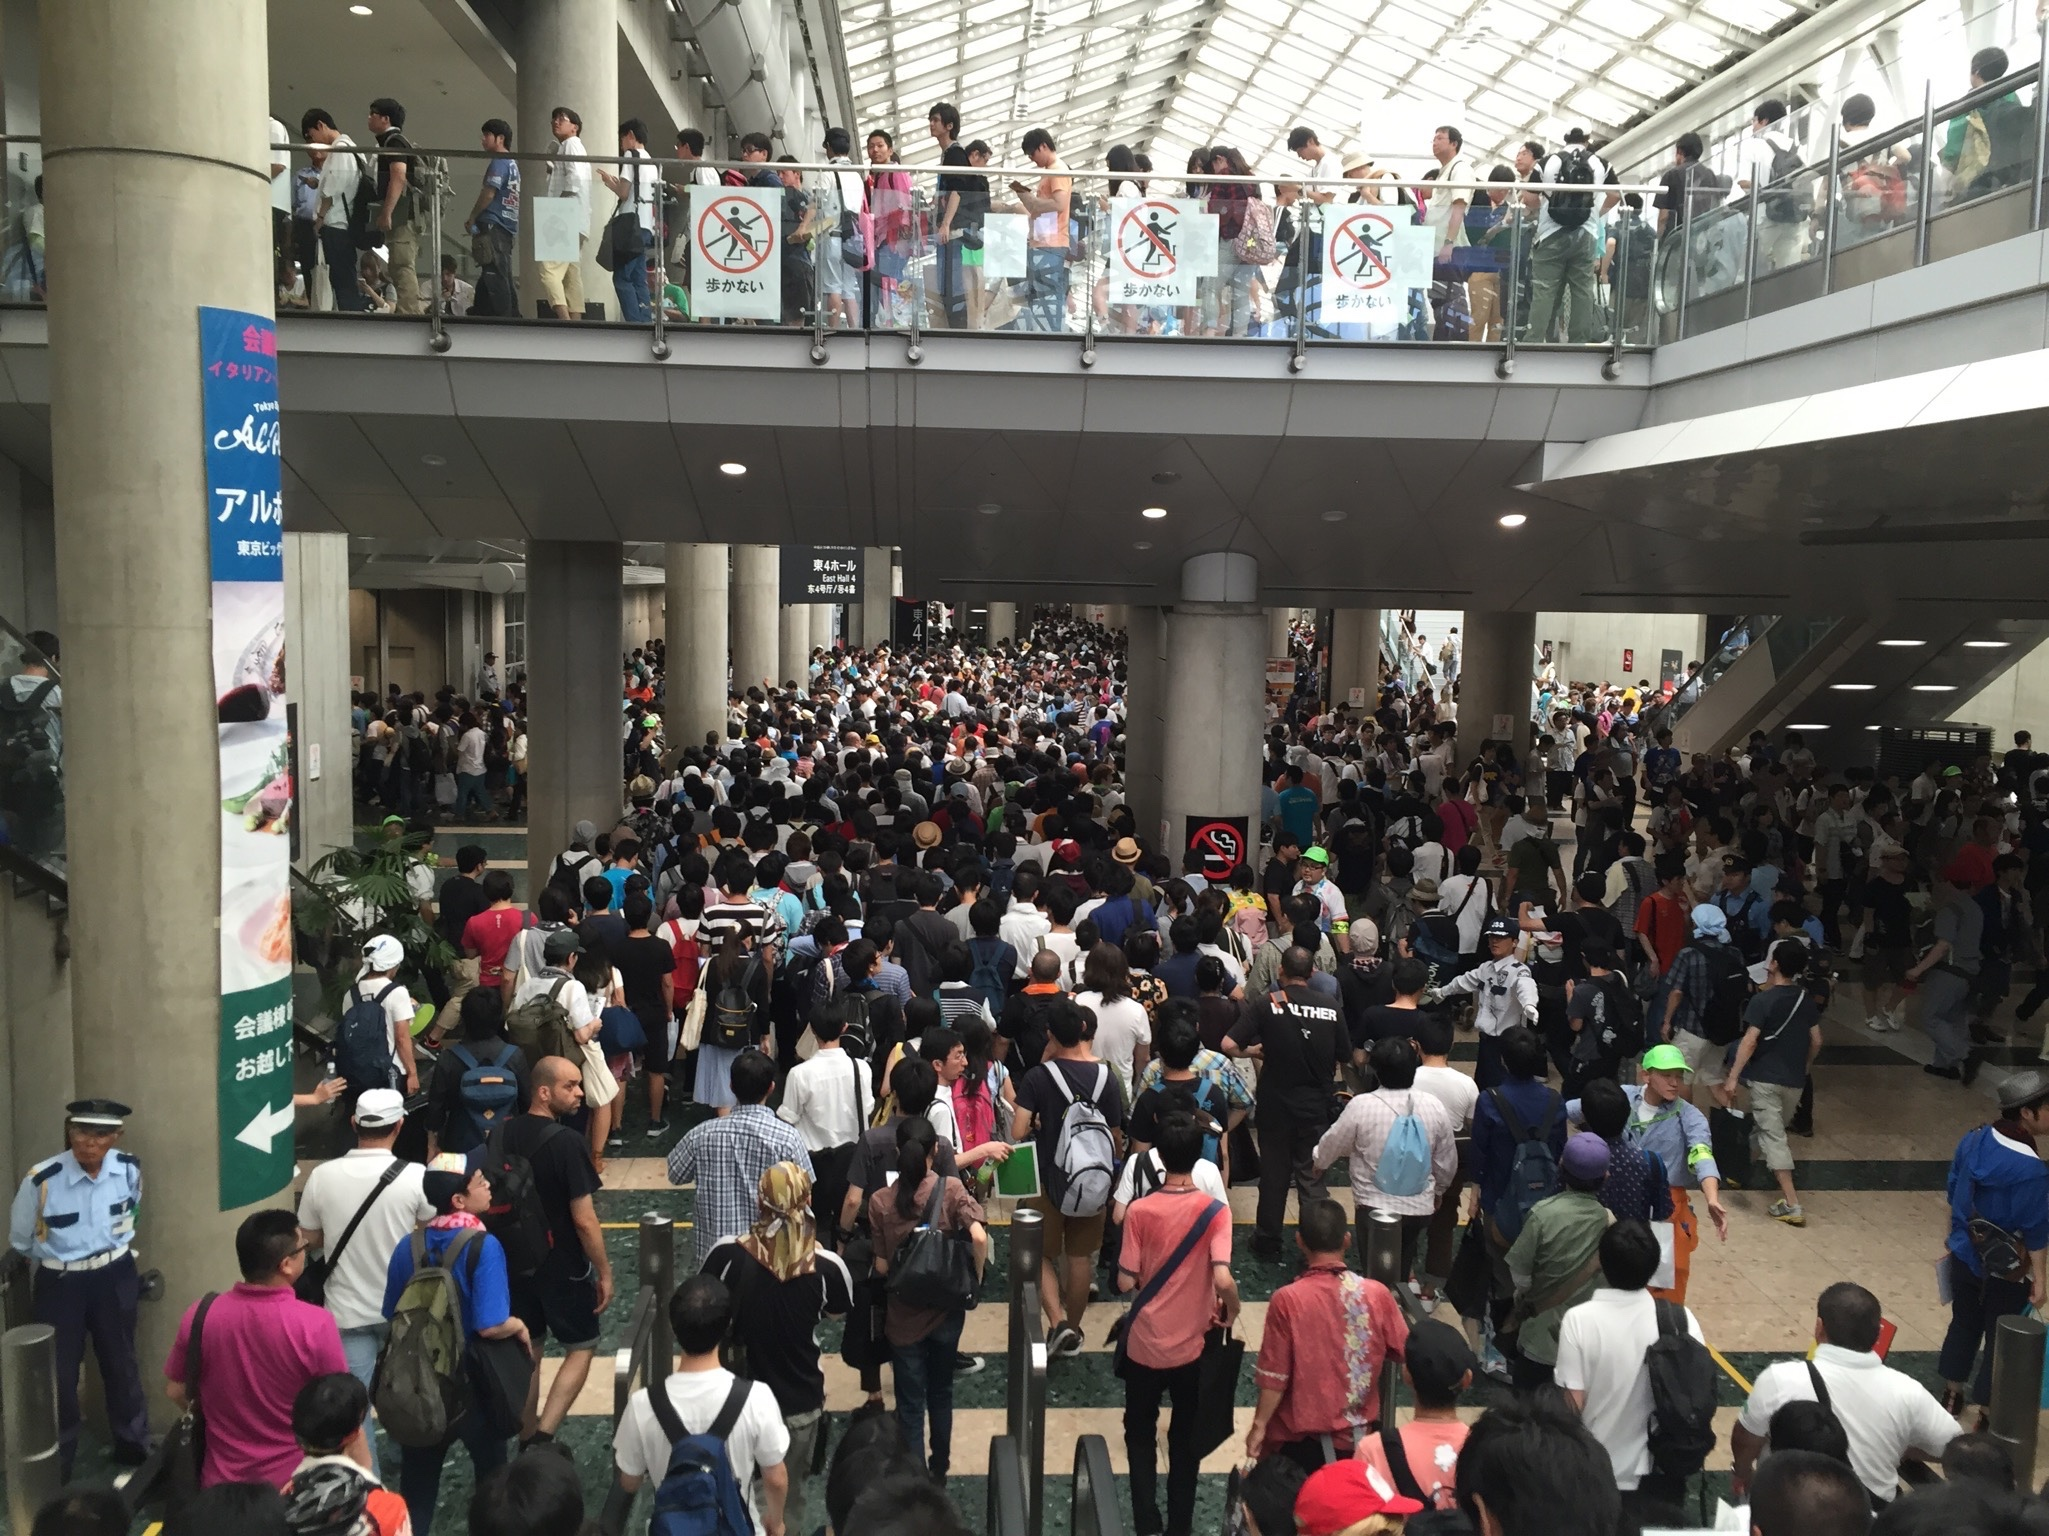 comiket 90 crowds